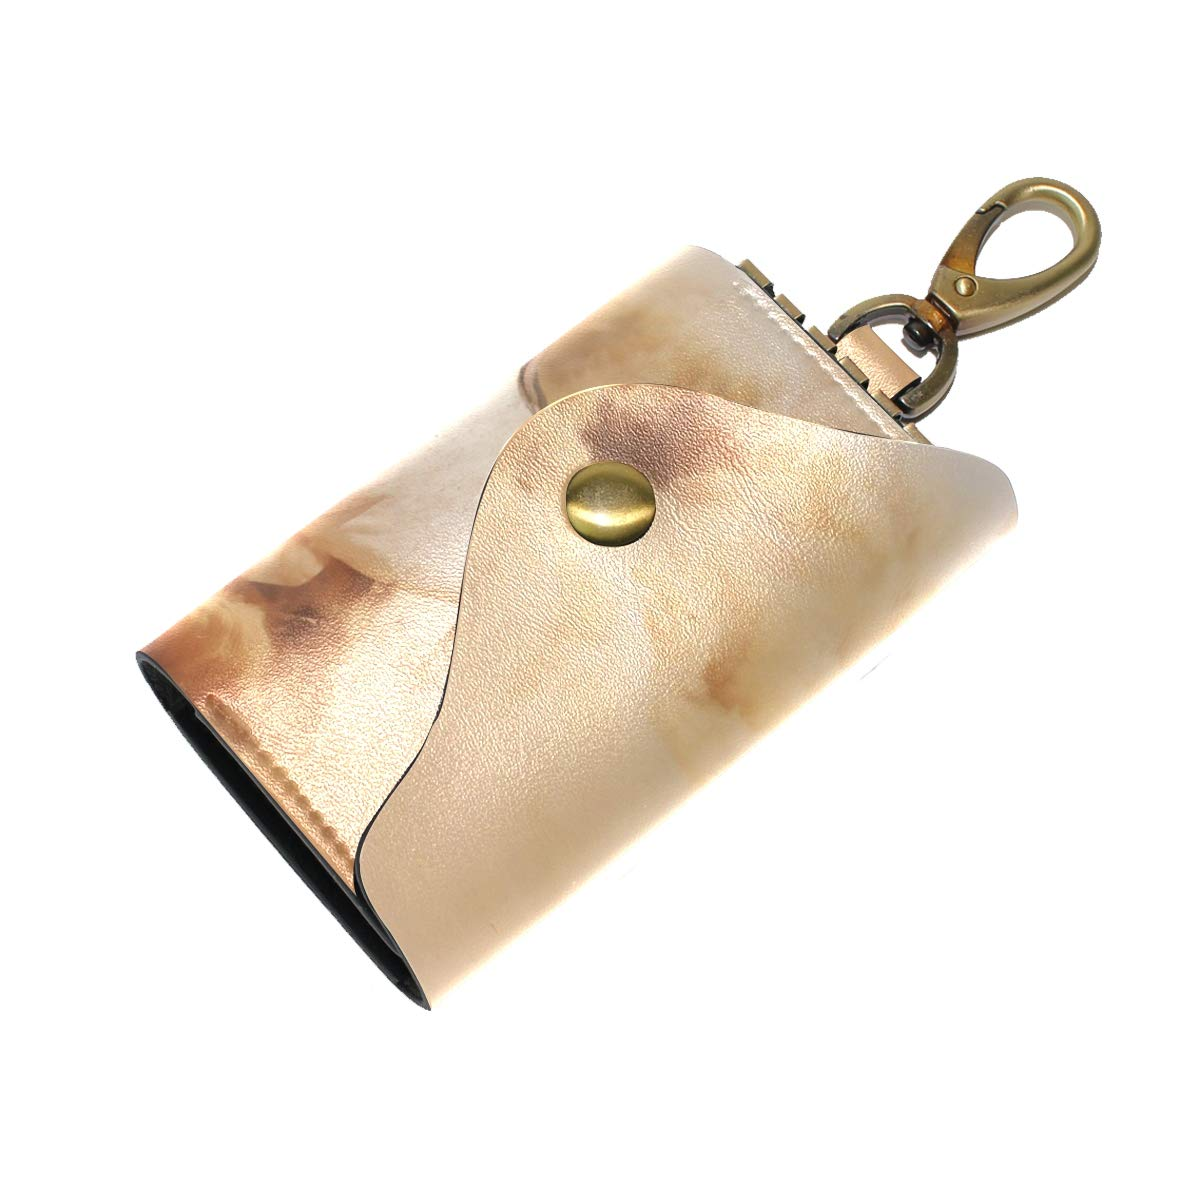 KEAKIA Running Horse Leather Key Case Wallets Tri-fold Key Holder Keychains with 6 Hooks 2 Slot Snap Closure for Men Women